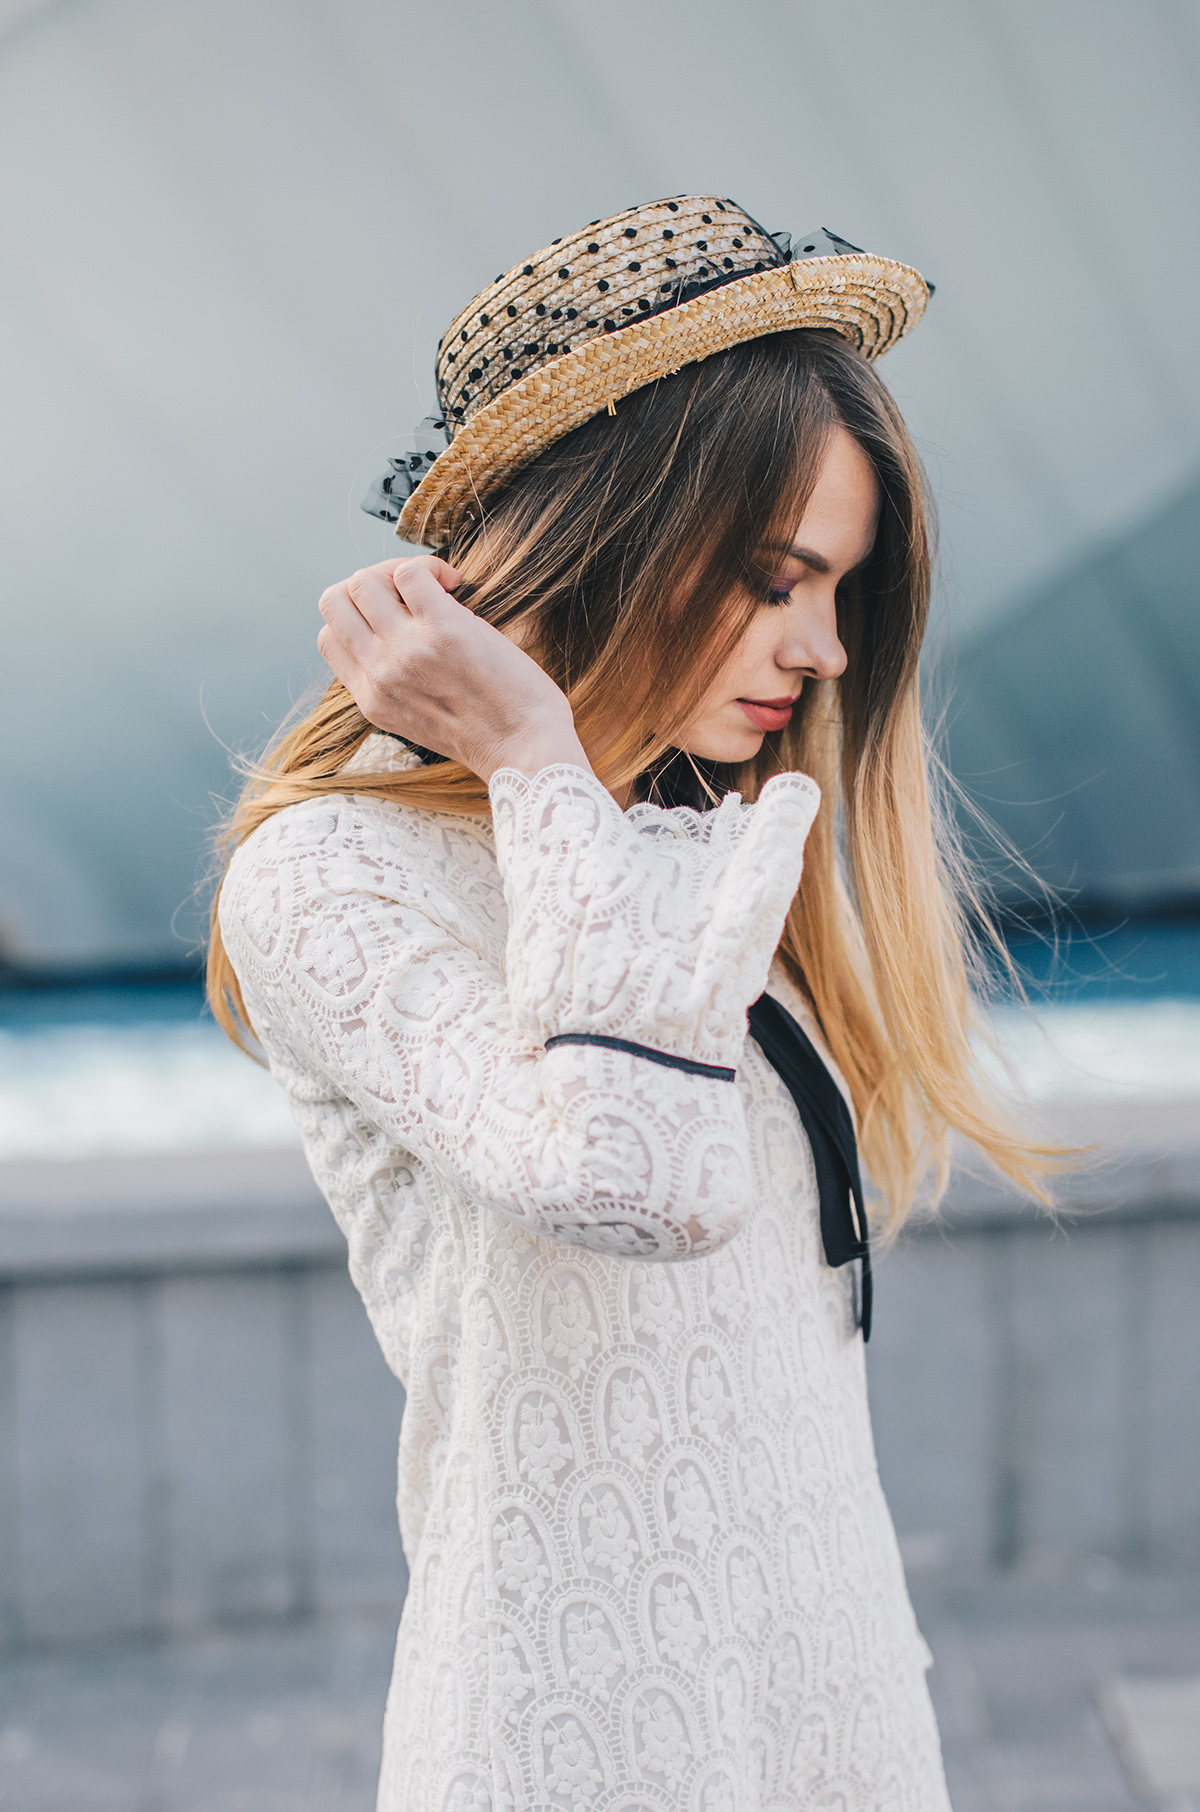 lace-dress-bell-sleeves-straw-hat-oxford-shoes-6